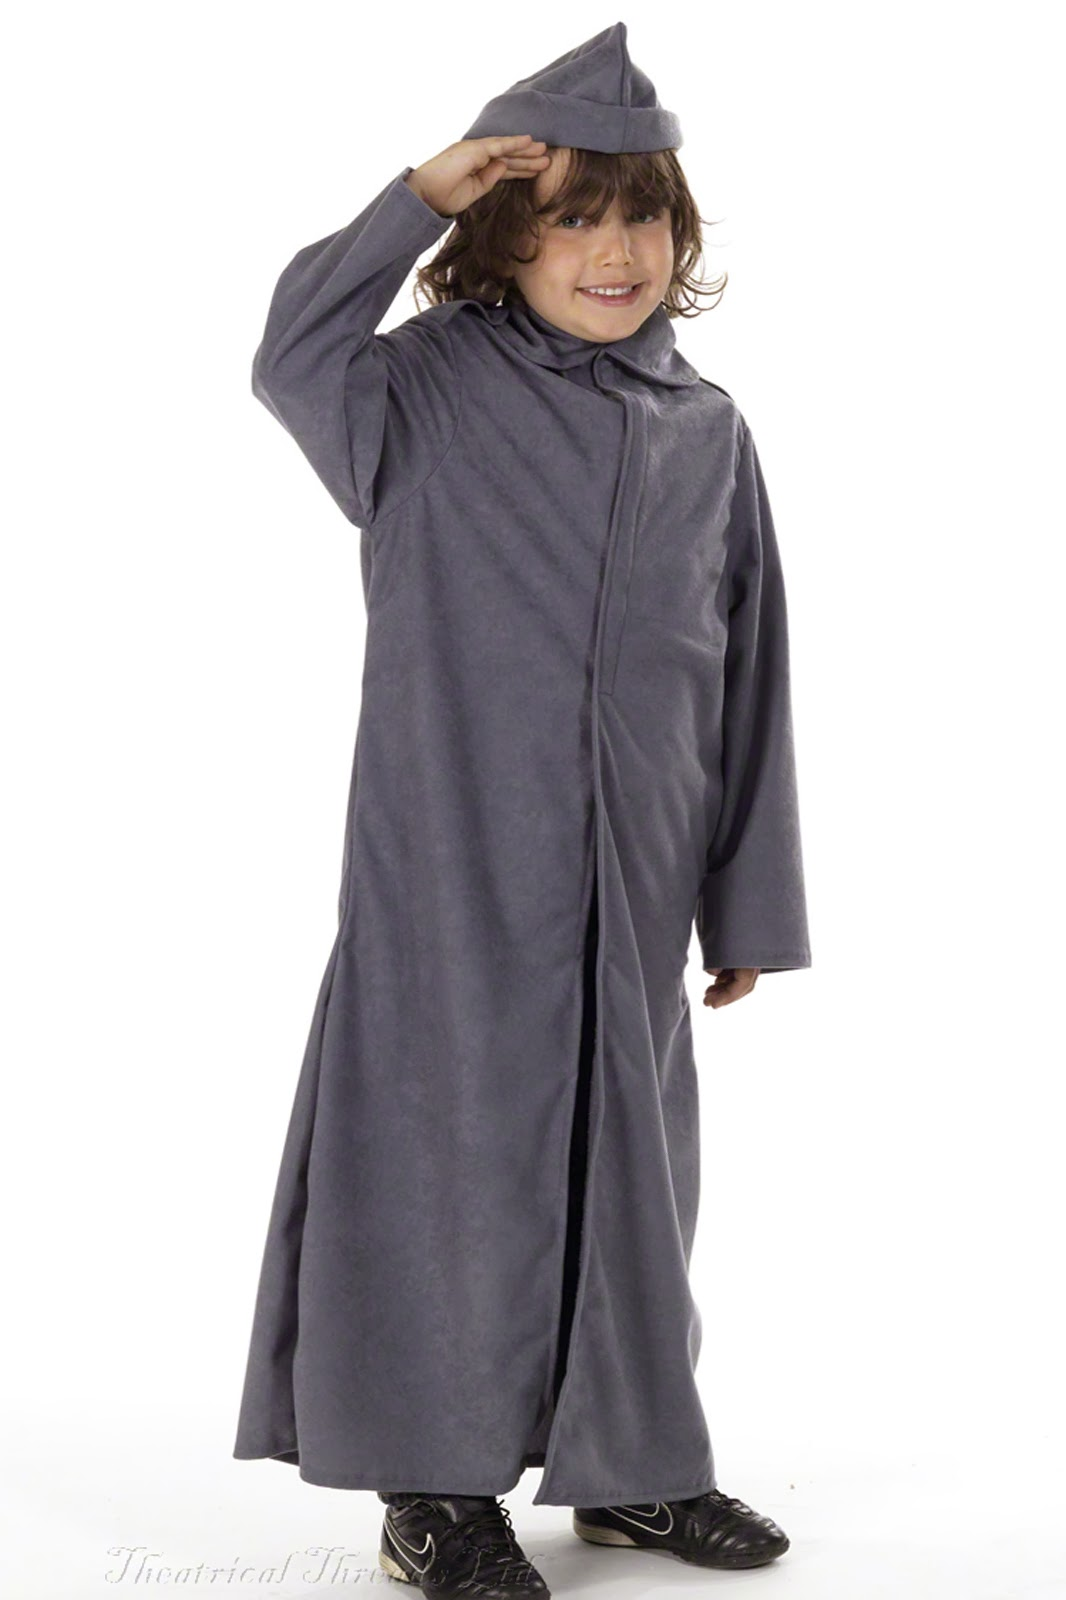 Popular kids trench coat costume of Good Quality and at Affordable Prices You can Buy on AliExpress. We believe in helping you find the product that is right for you. AliExpress carries wide variety of products, so you can find just what you're looking for – and maybe something you never even imagined along the way.